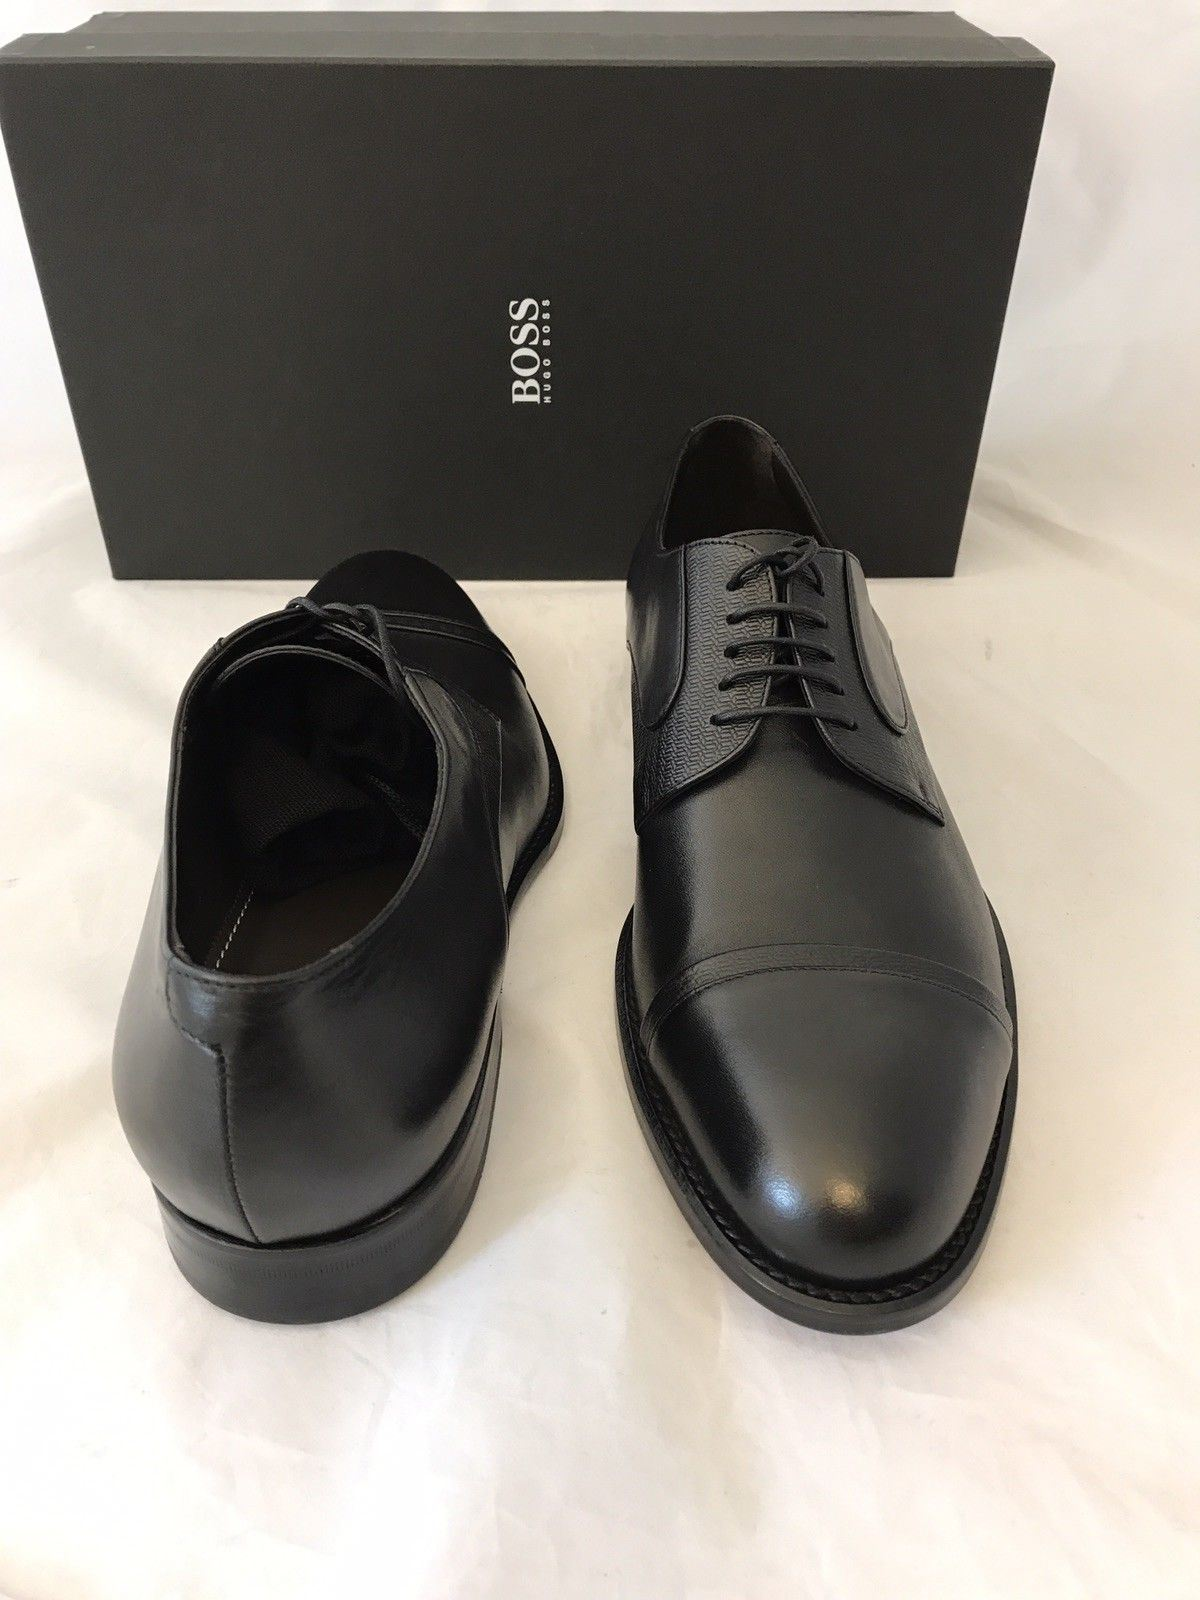 NIB $415 Boss Hugo Boss Manhattan Derb Men's Leather Dress Shoes Black 9 US